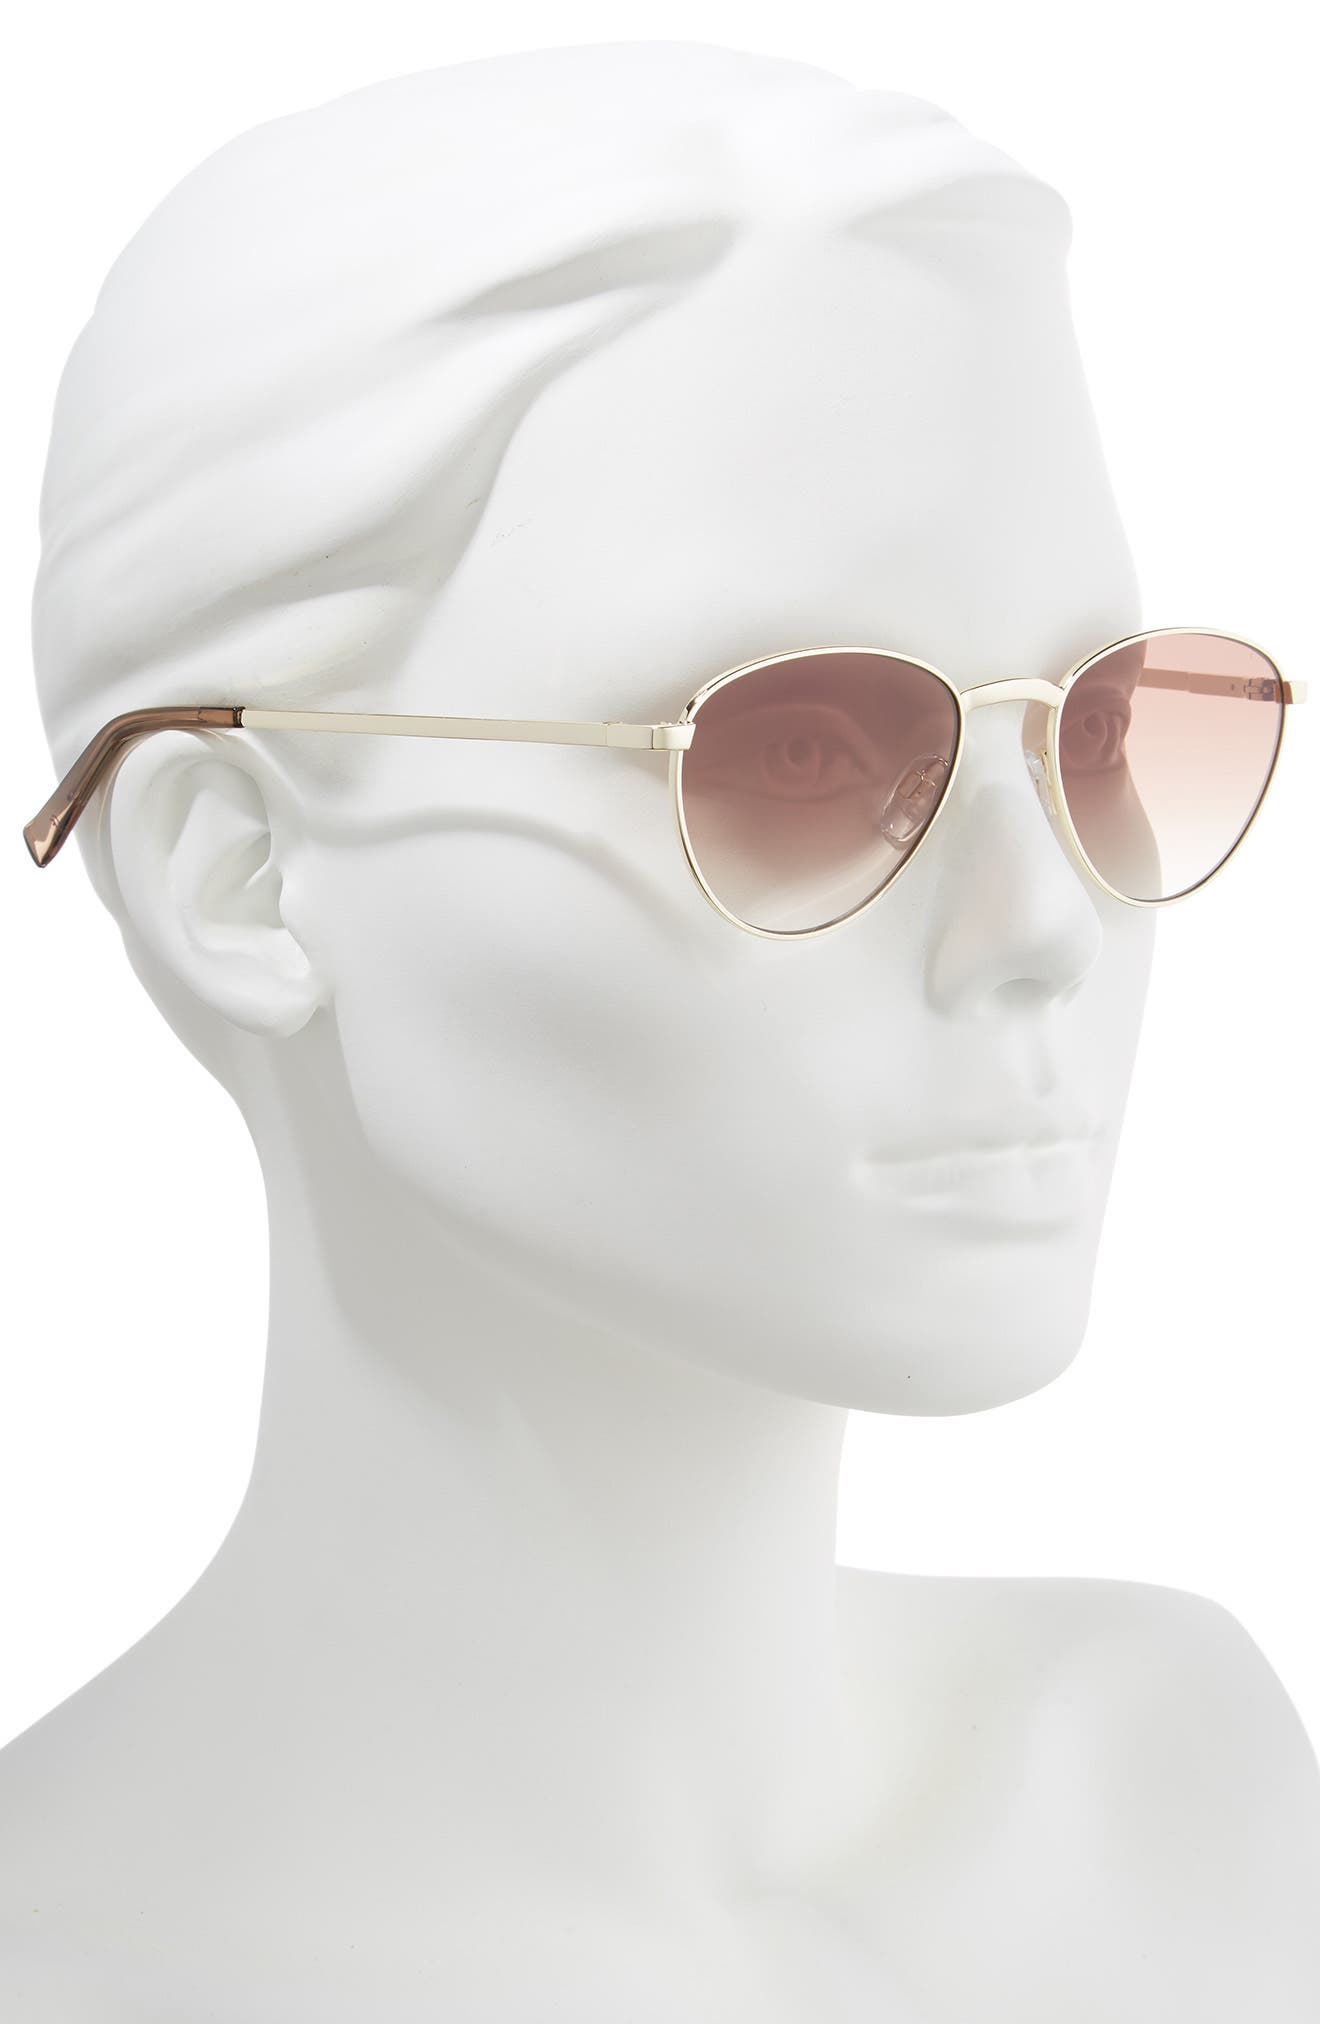 Hot Stuff 52mm Oval Sunglasses,                             Alternate thumbnail 2, color,                             BRIGHT GOLD